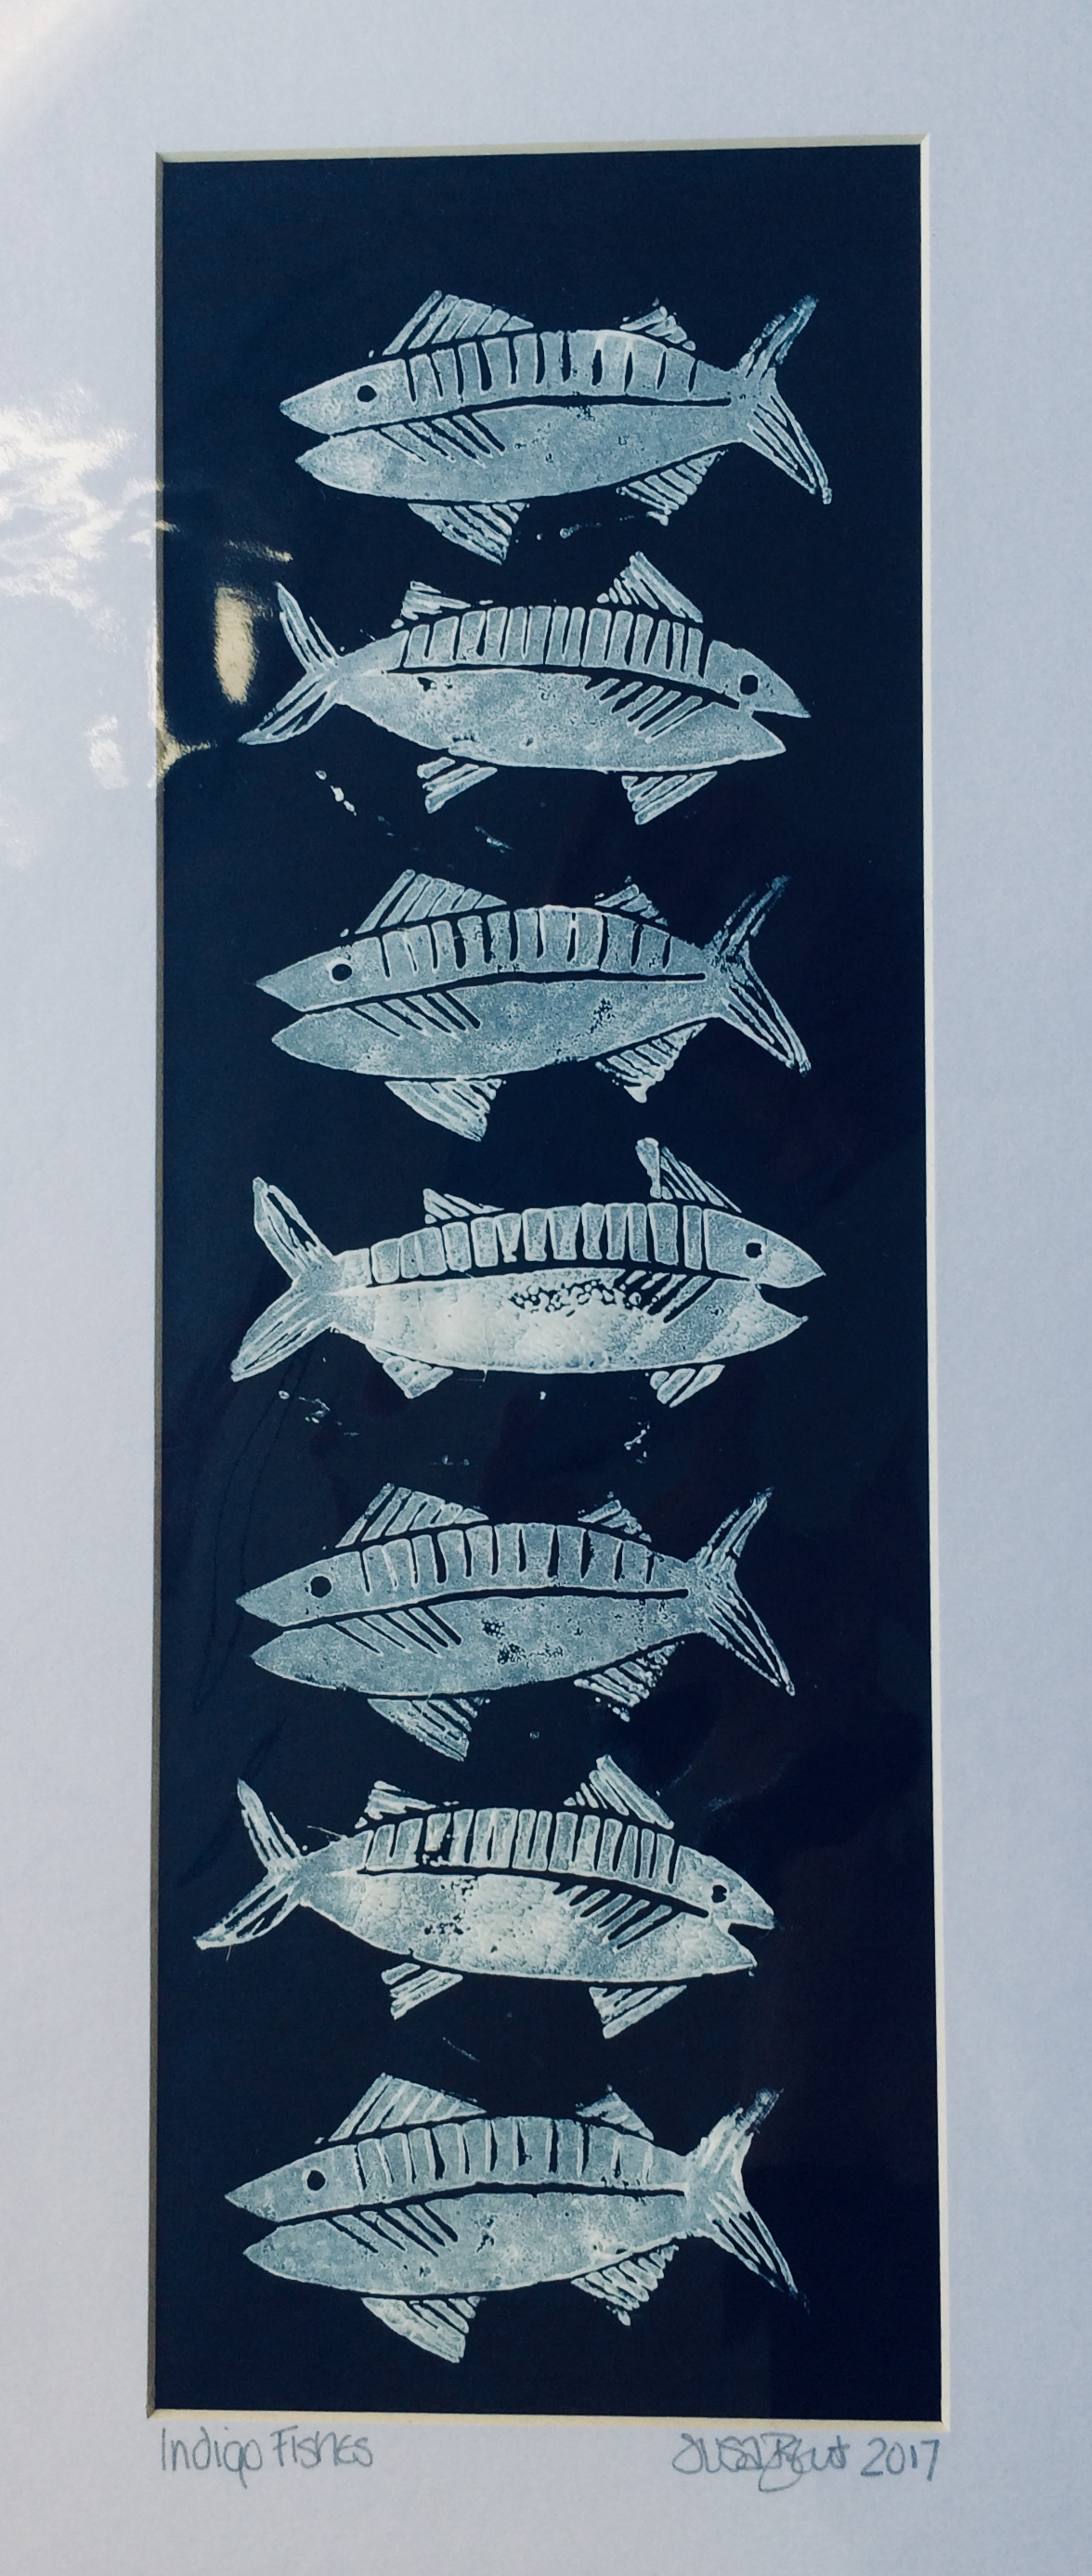 INDIGO FISHES